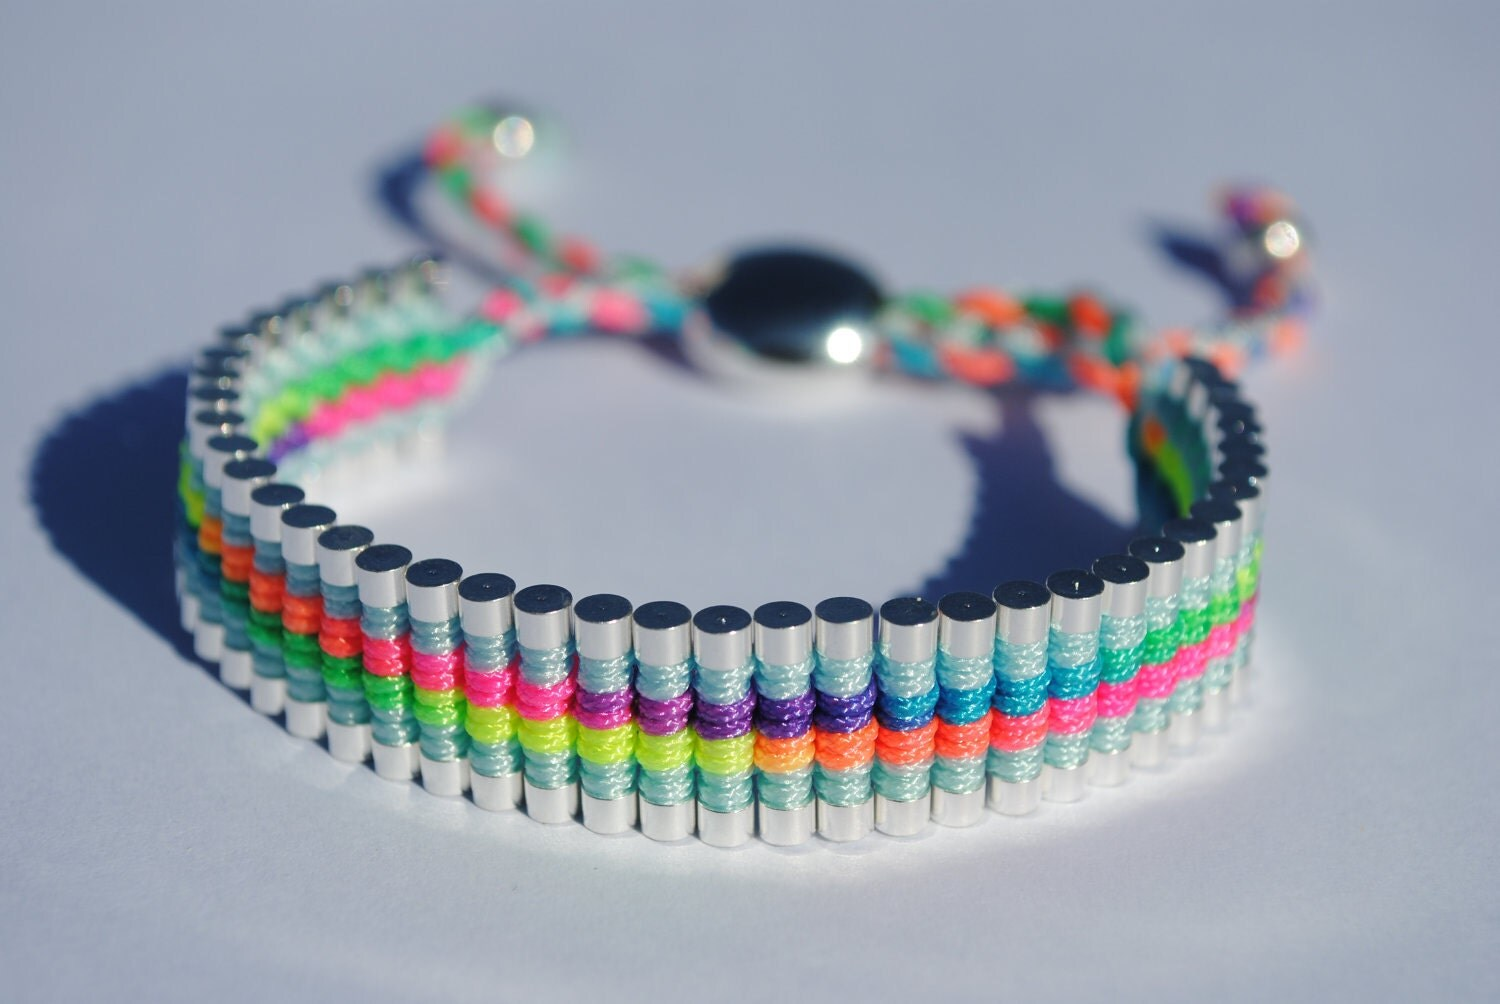 Link Friendship Bracelet. Silver Plated with Woven Neon Macrame and blue trim. (Similar to Links of London Brand)